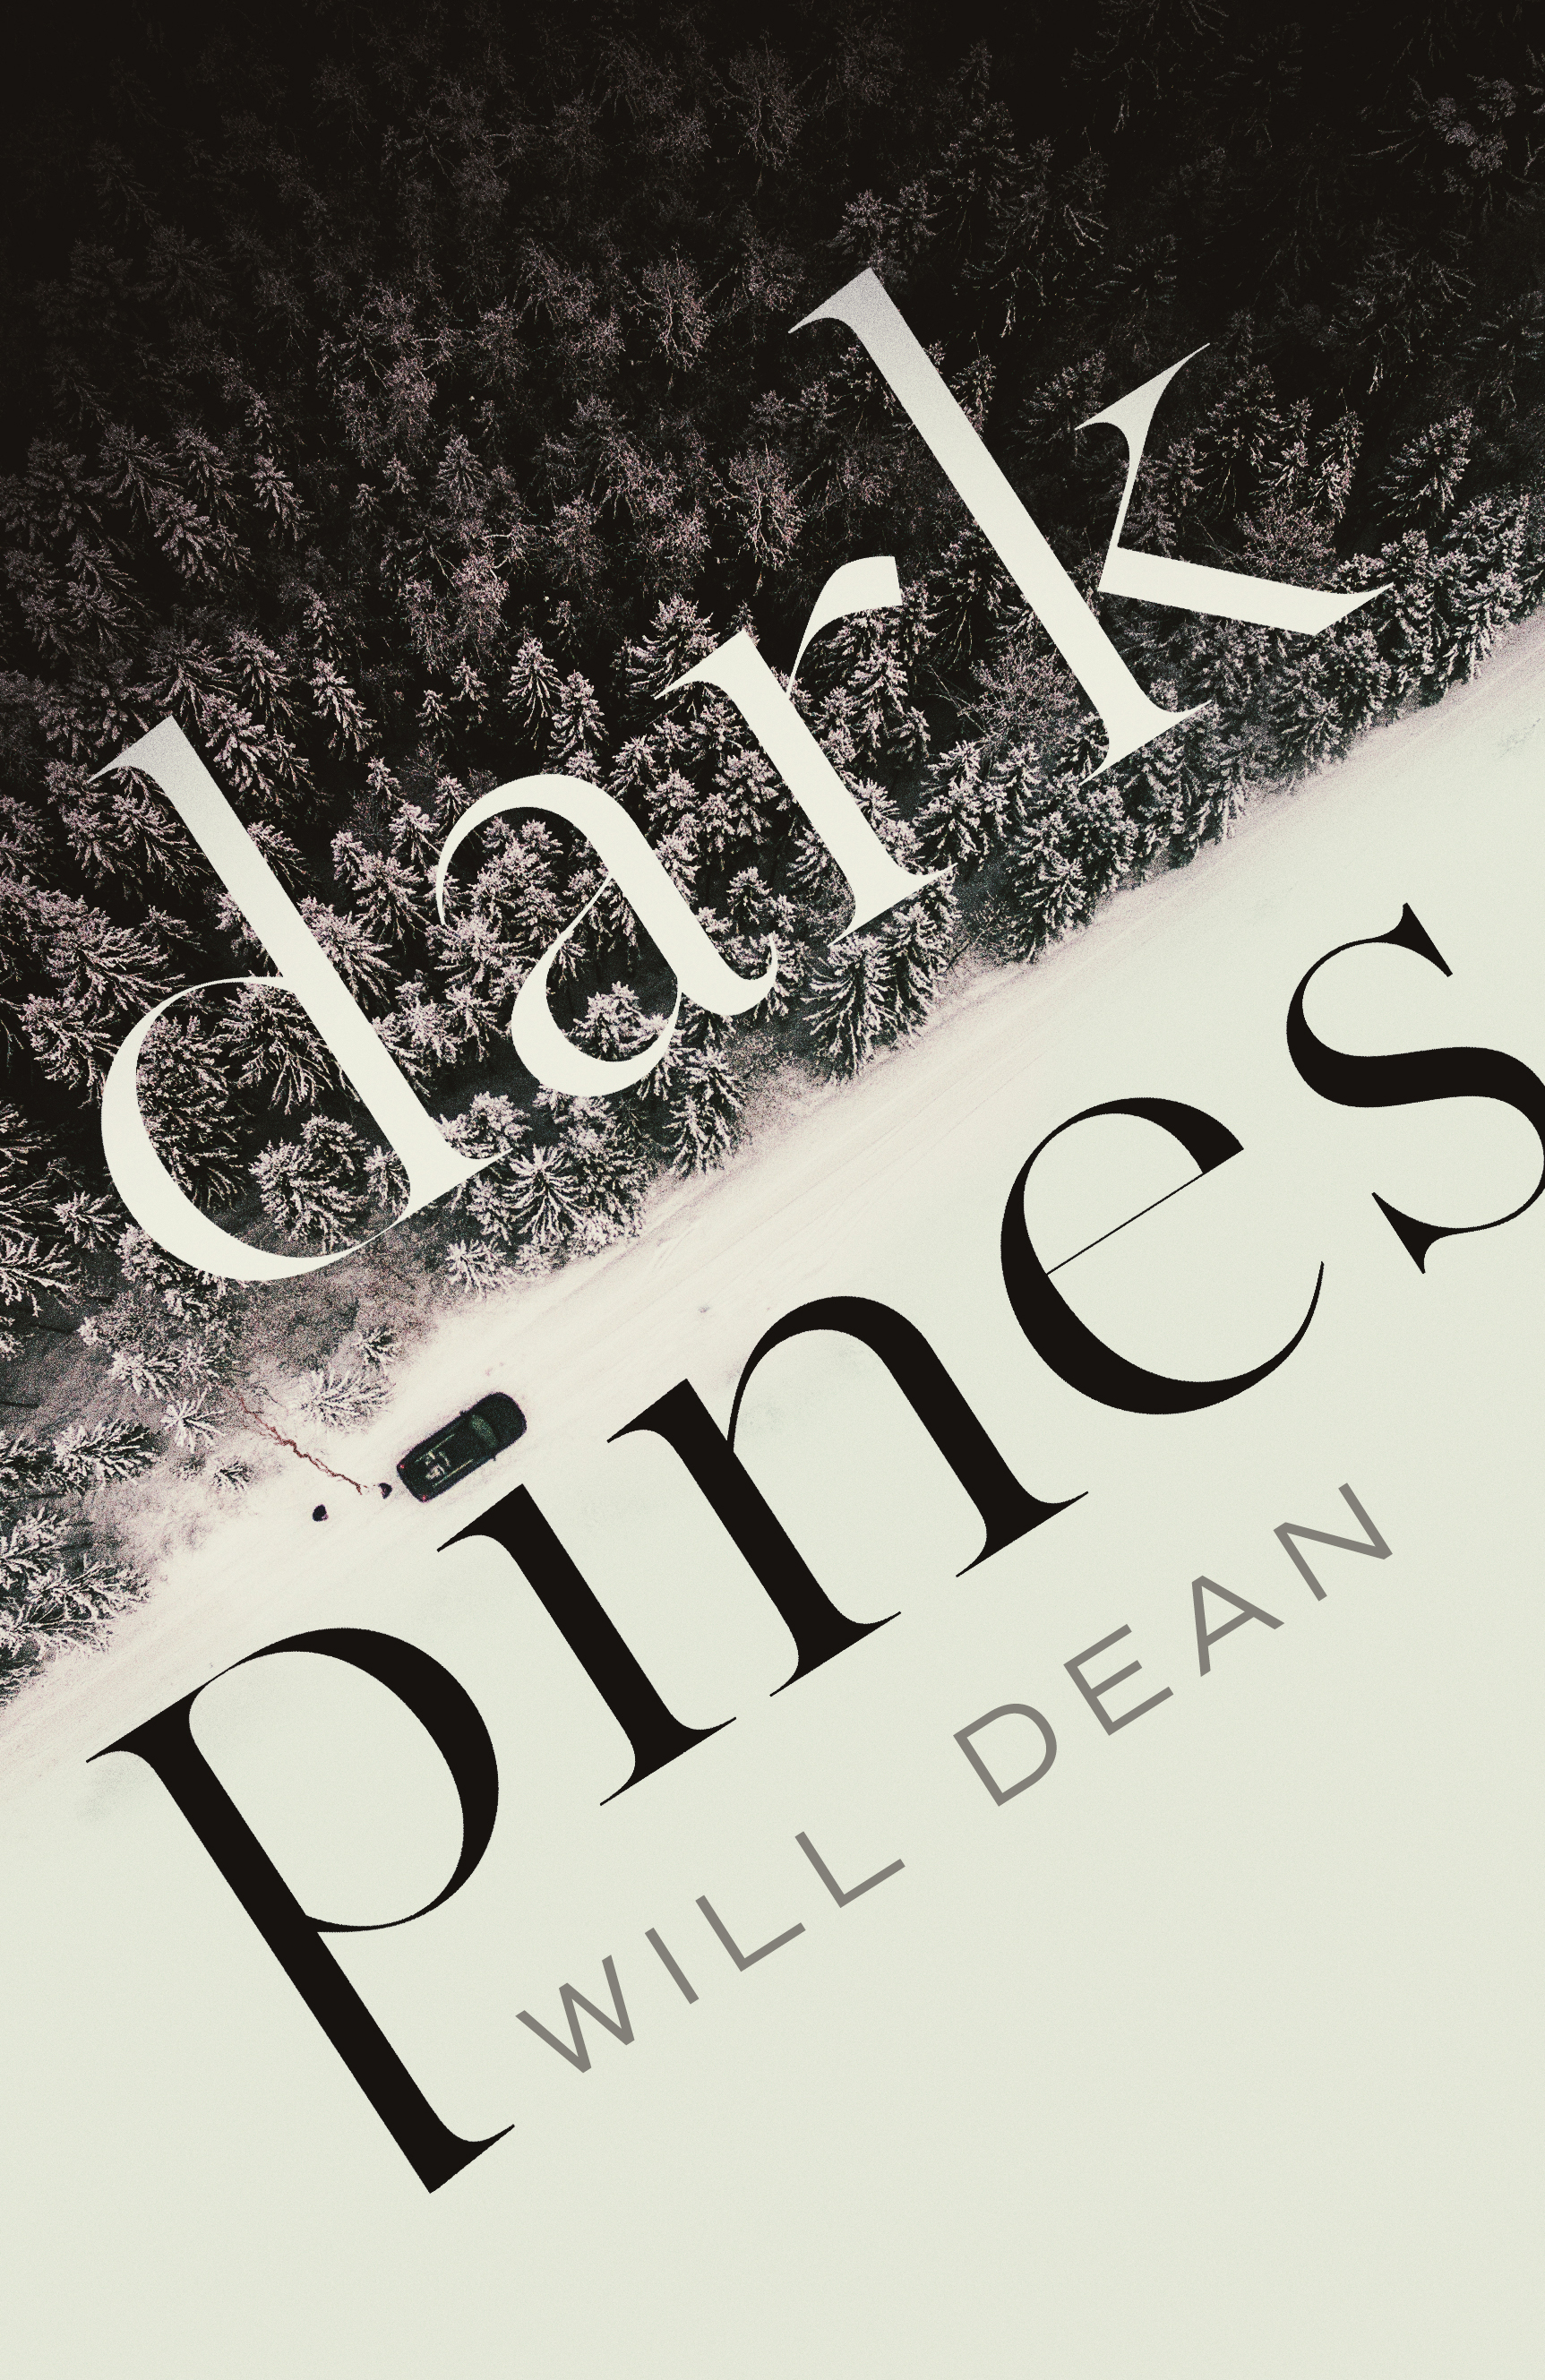 Dark Pines: Will Dean talks to Crime Time